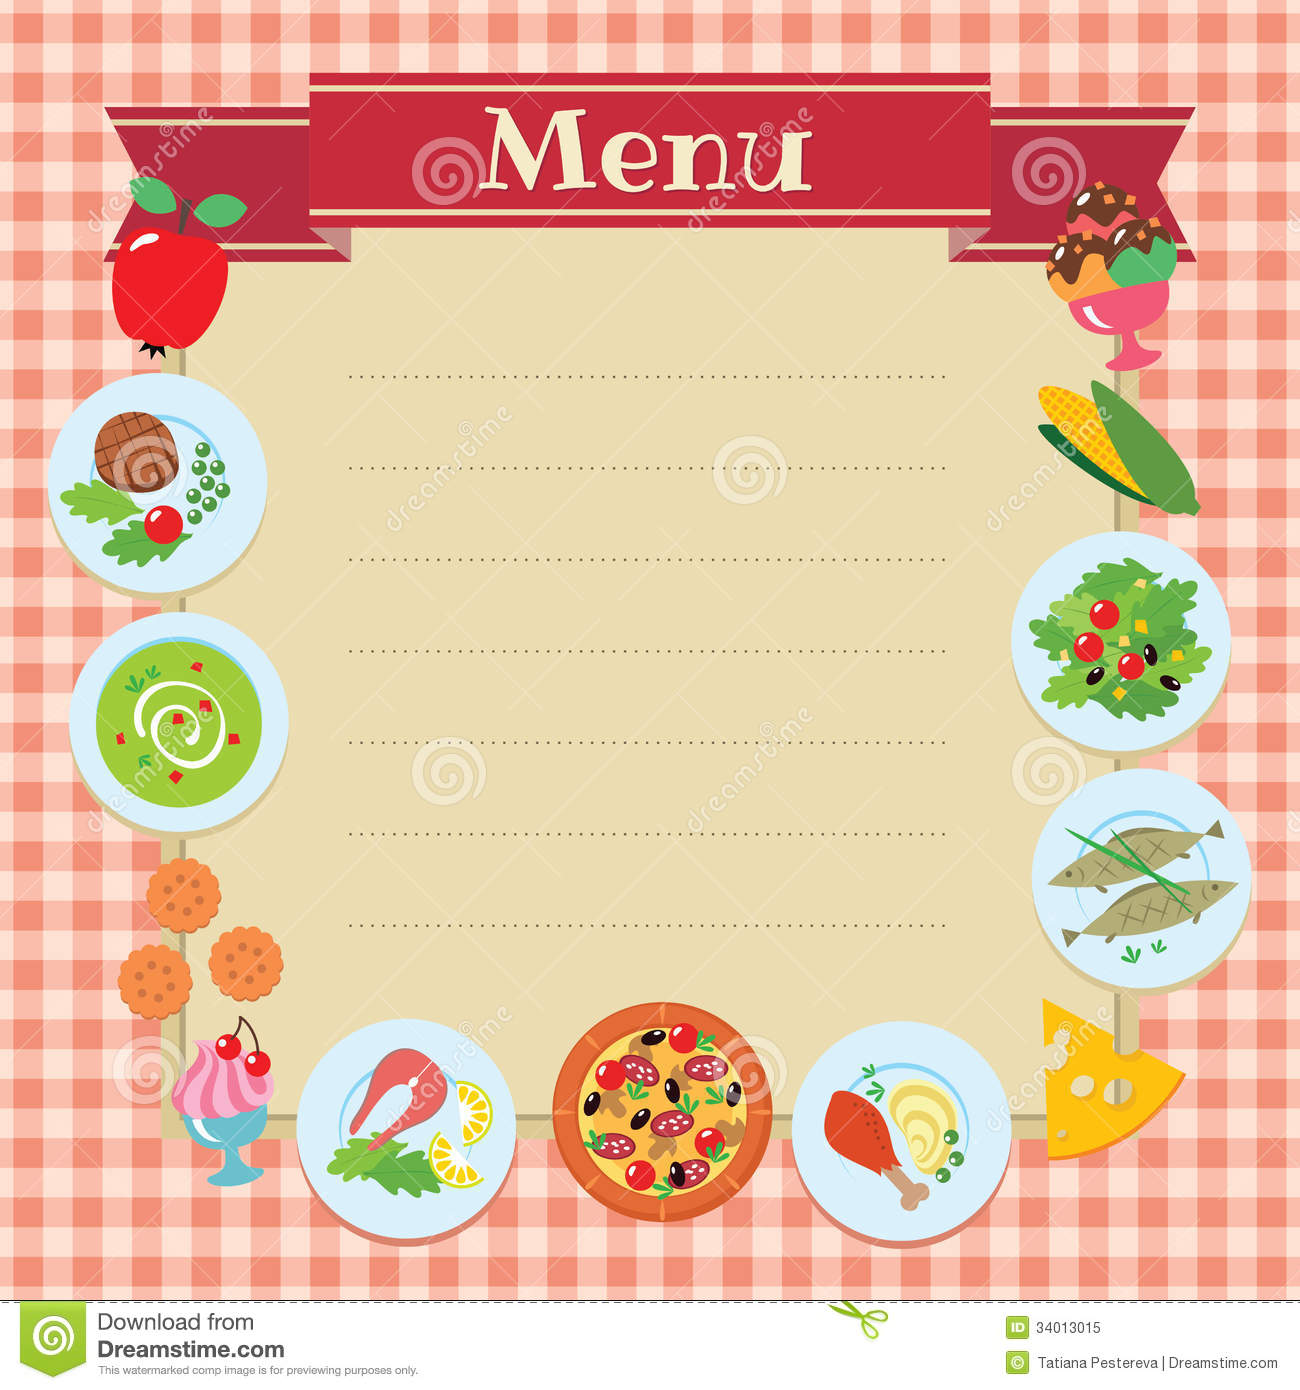 Cafe or restaurant menu template stock vector for Cafe menu design template free download